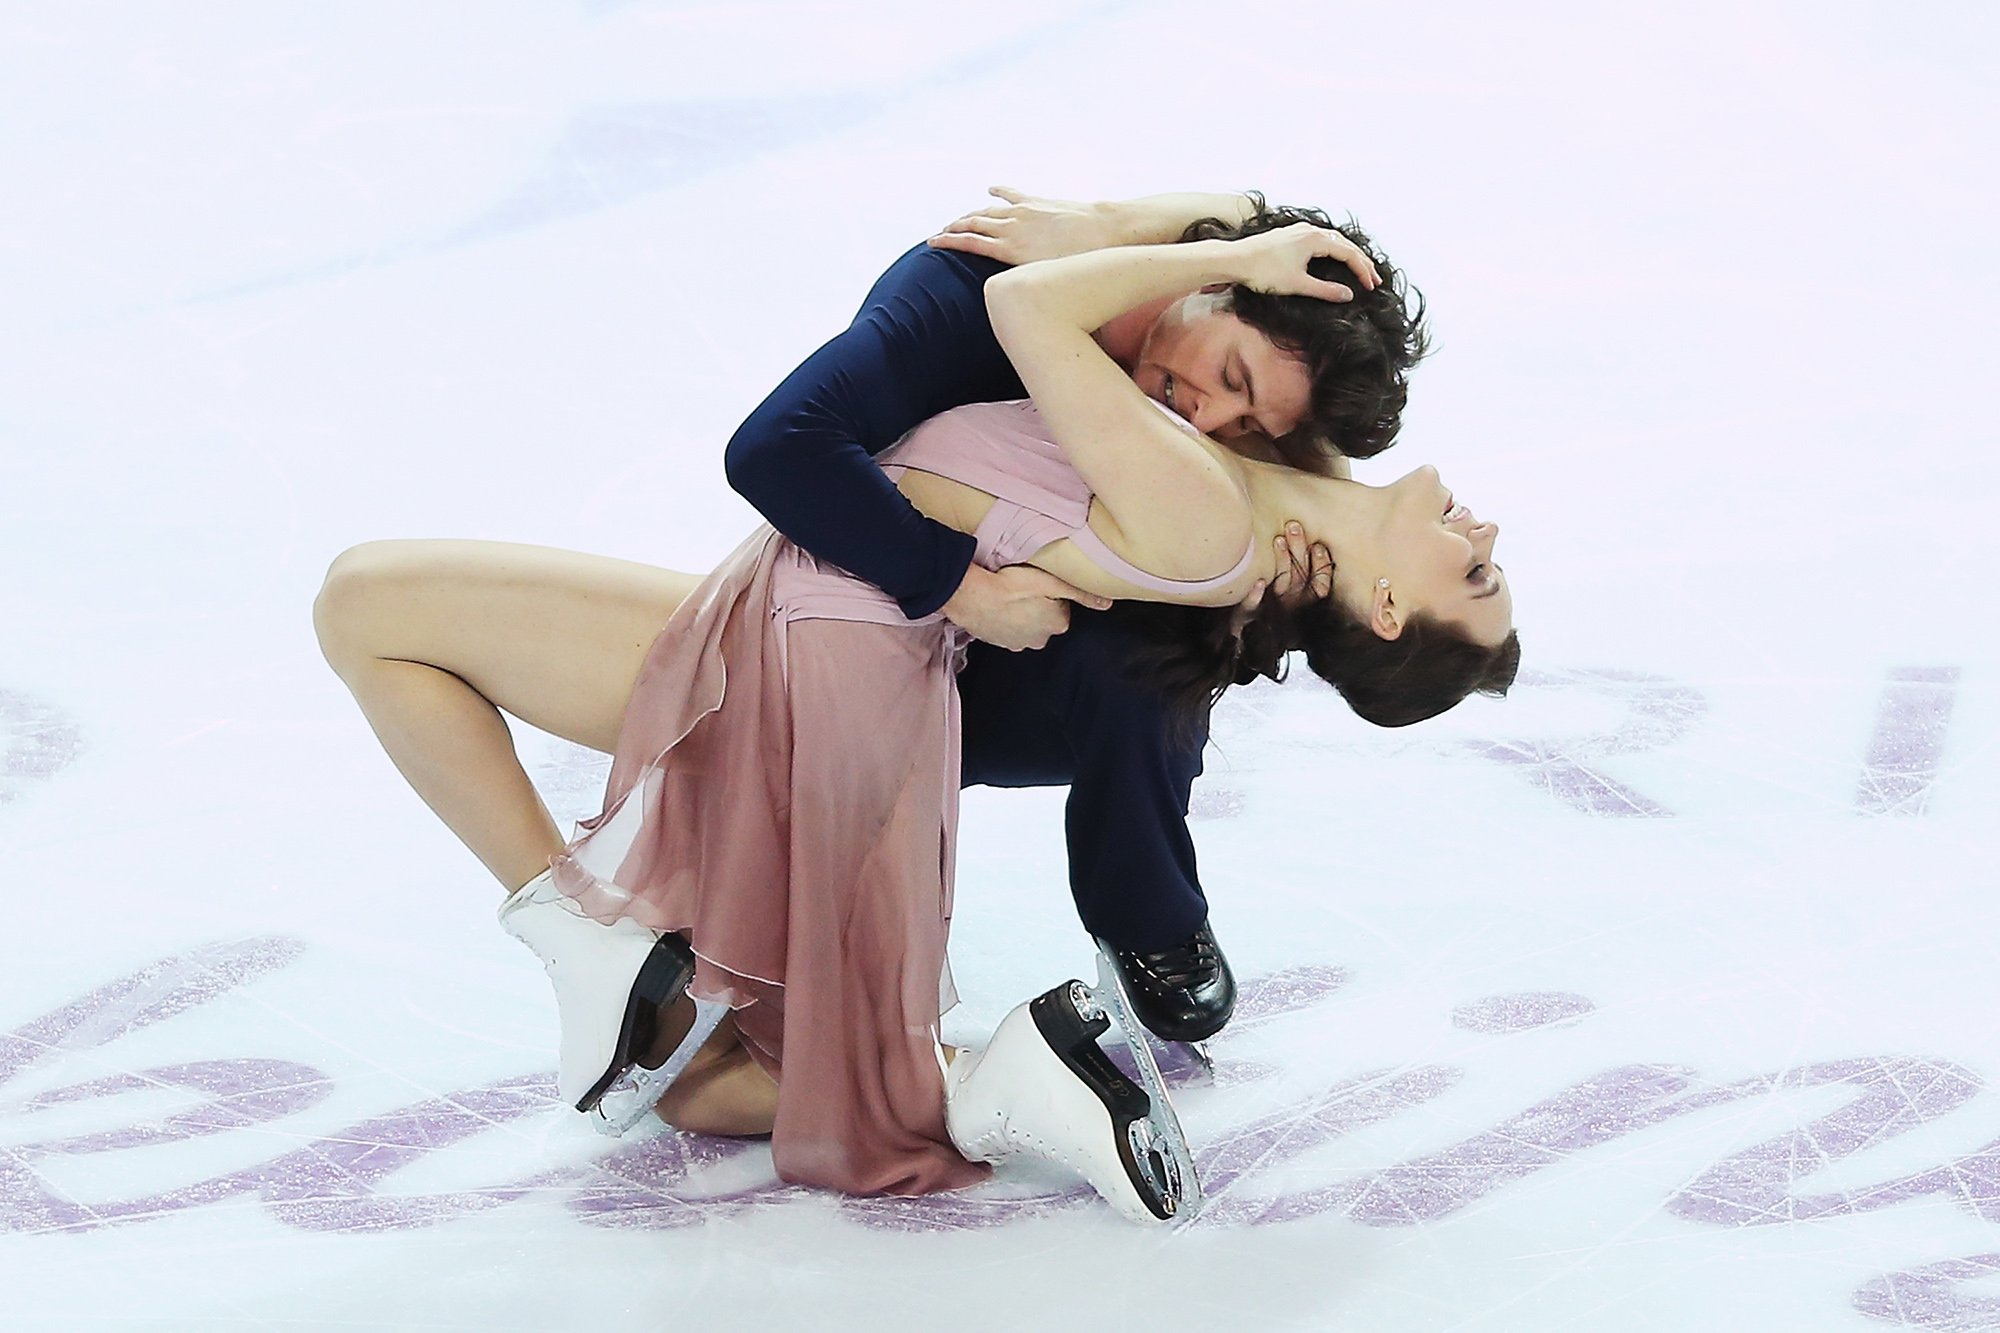 Canadian Ice Dancers to Perform Some Suggestive and Edgy Moves at the 2018 Winter Olympics